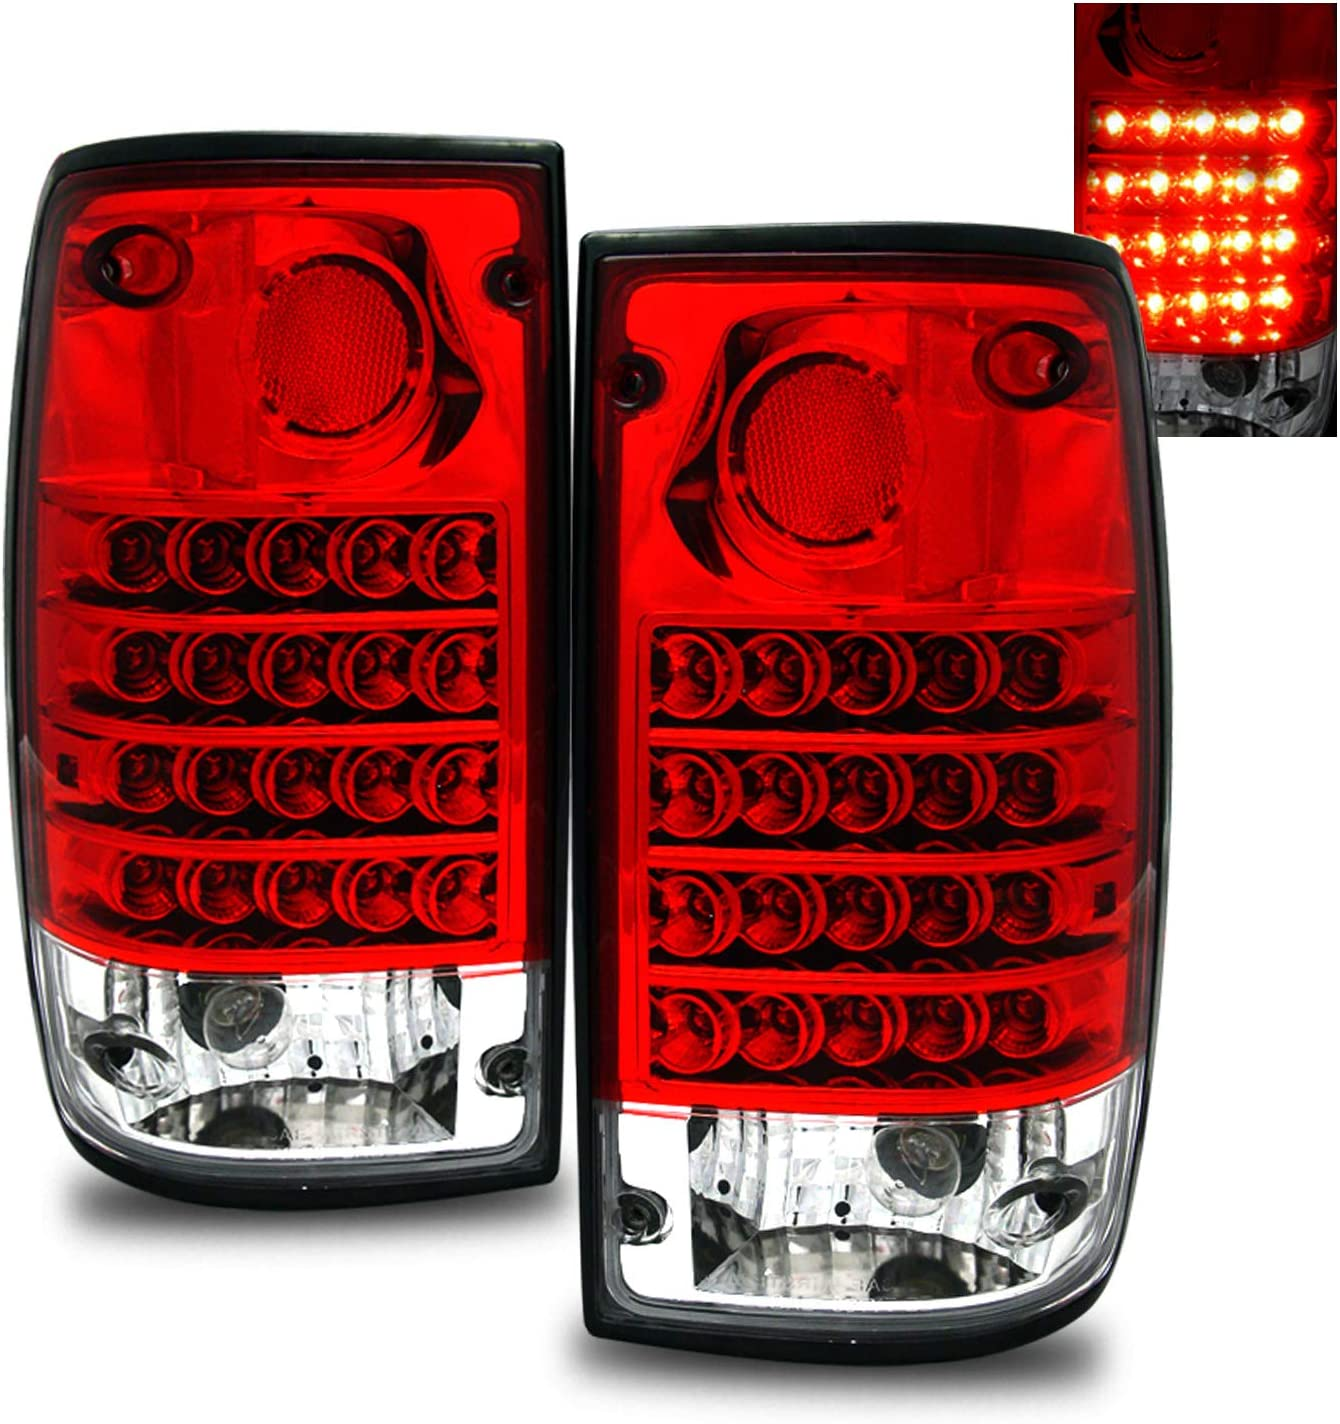 Set of Pair Red Lens LED Taillights for 1989-1995 Toyota Pickup